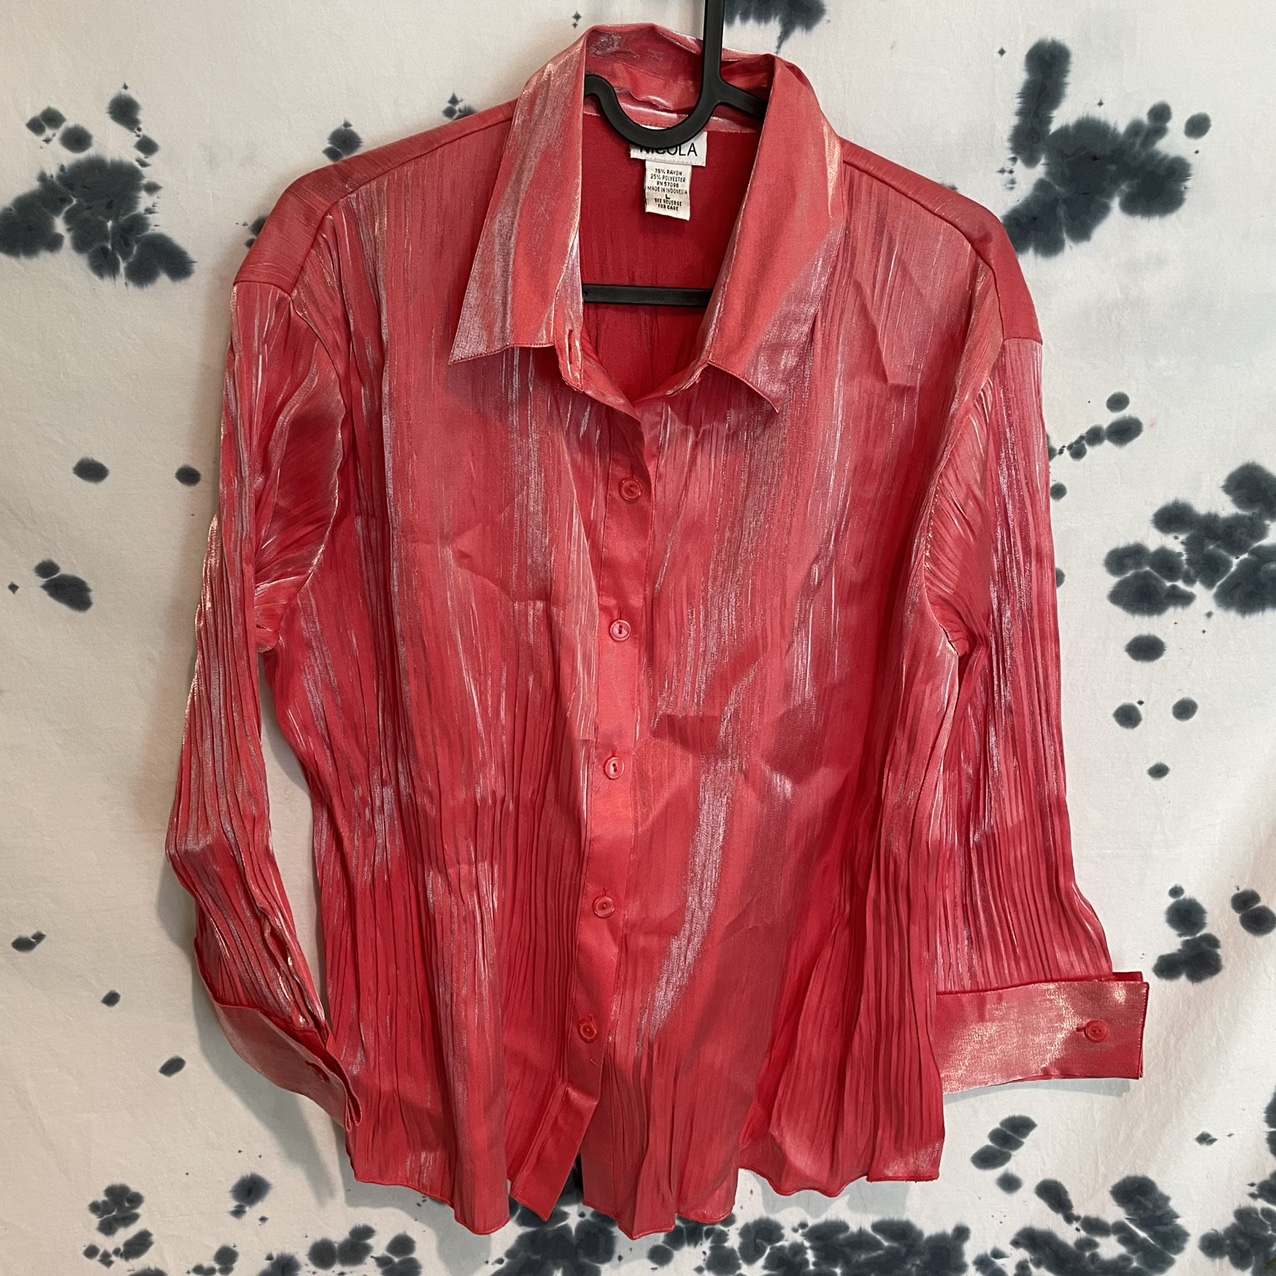 Product Image 1 - Vintage Nicola Pink/Silver Sheen Blouse  This